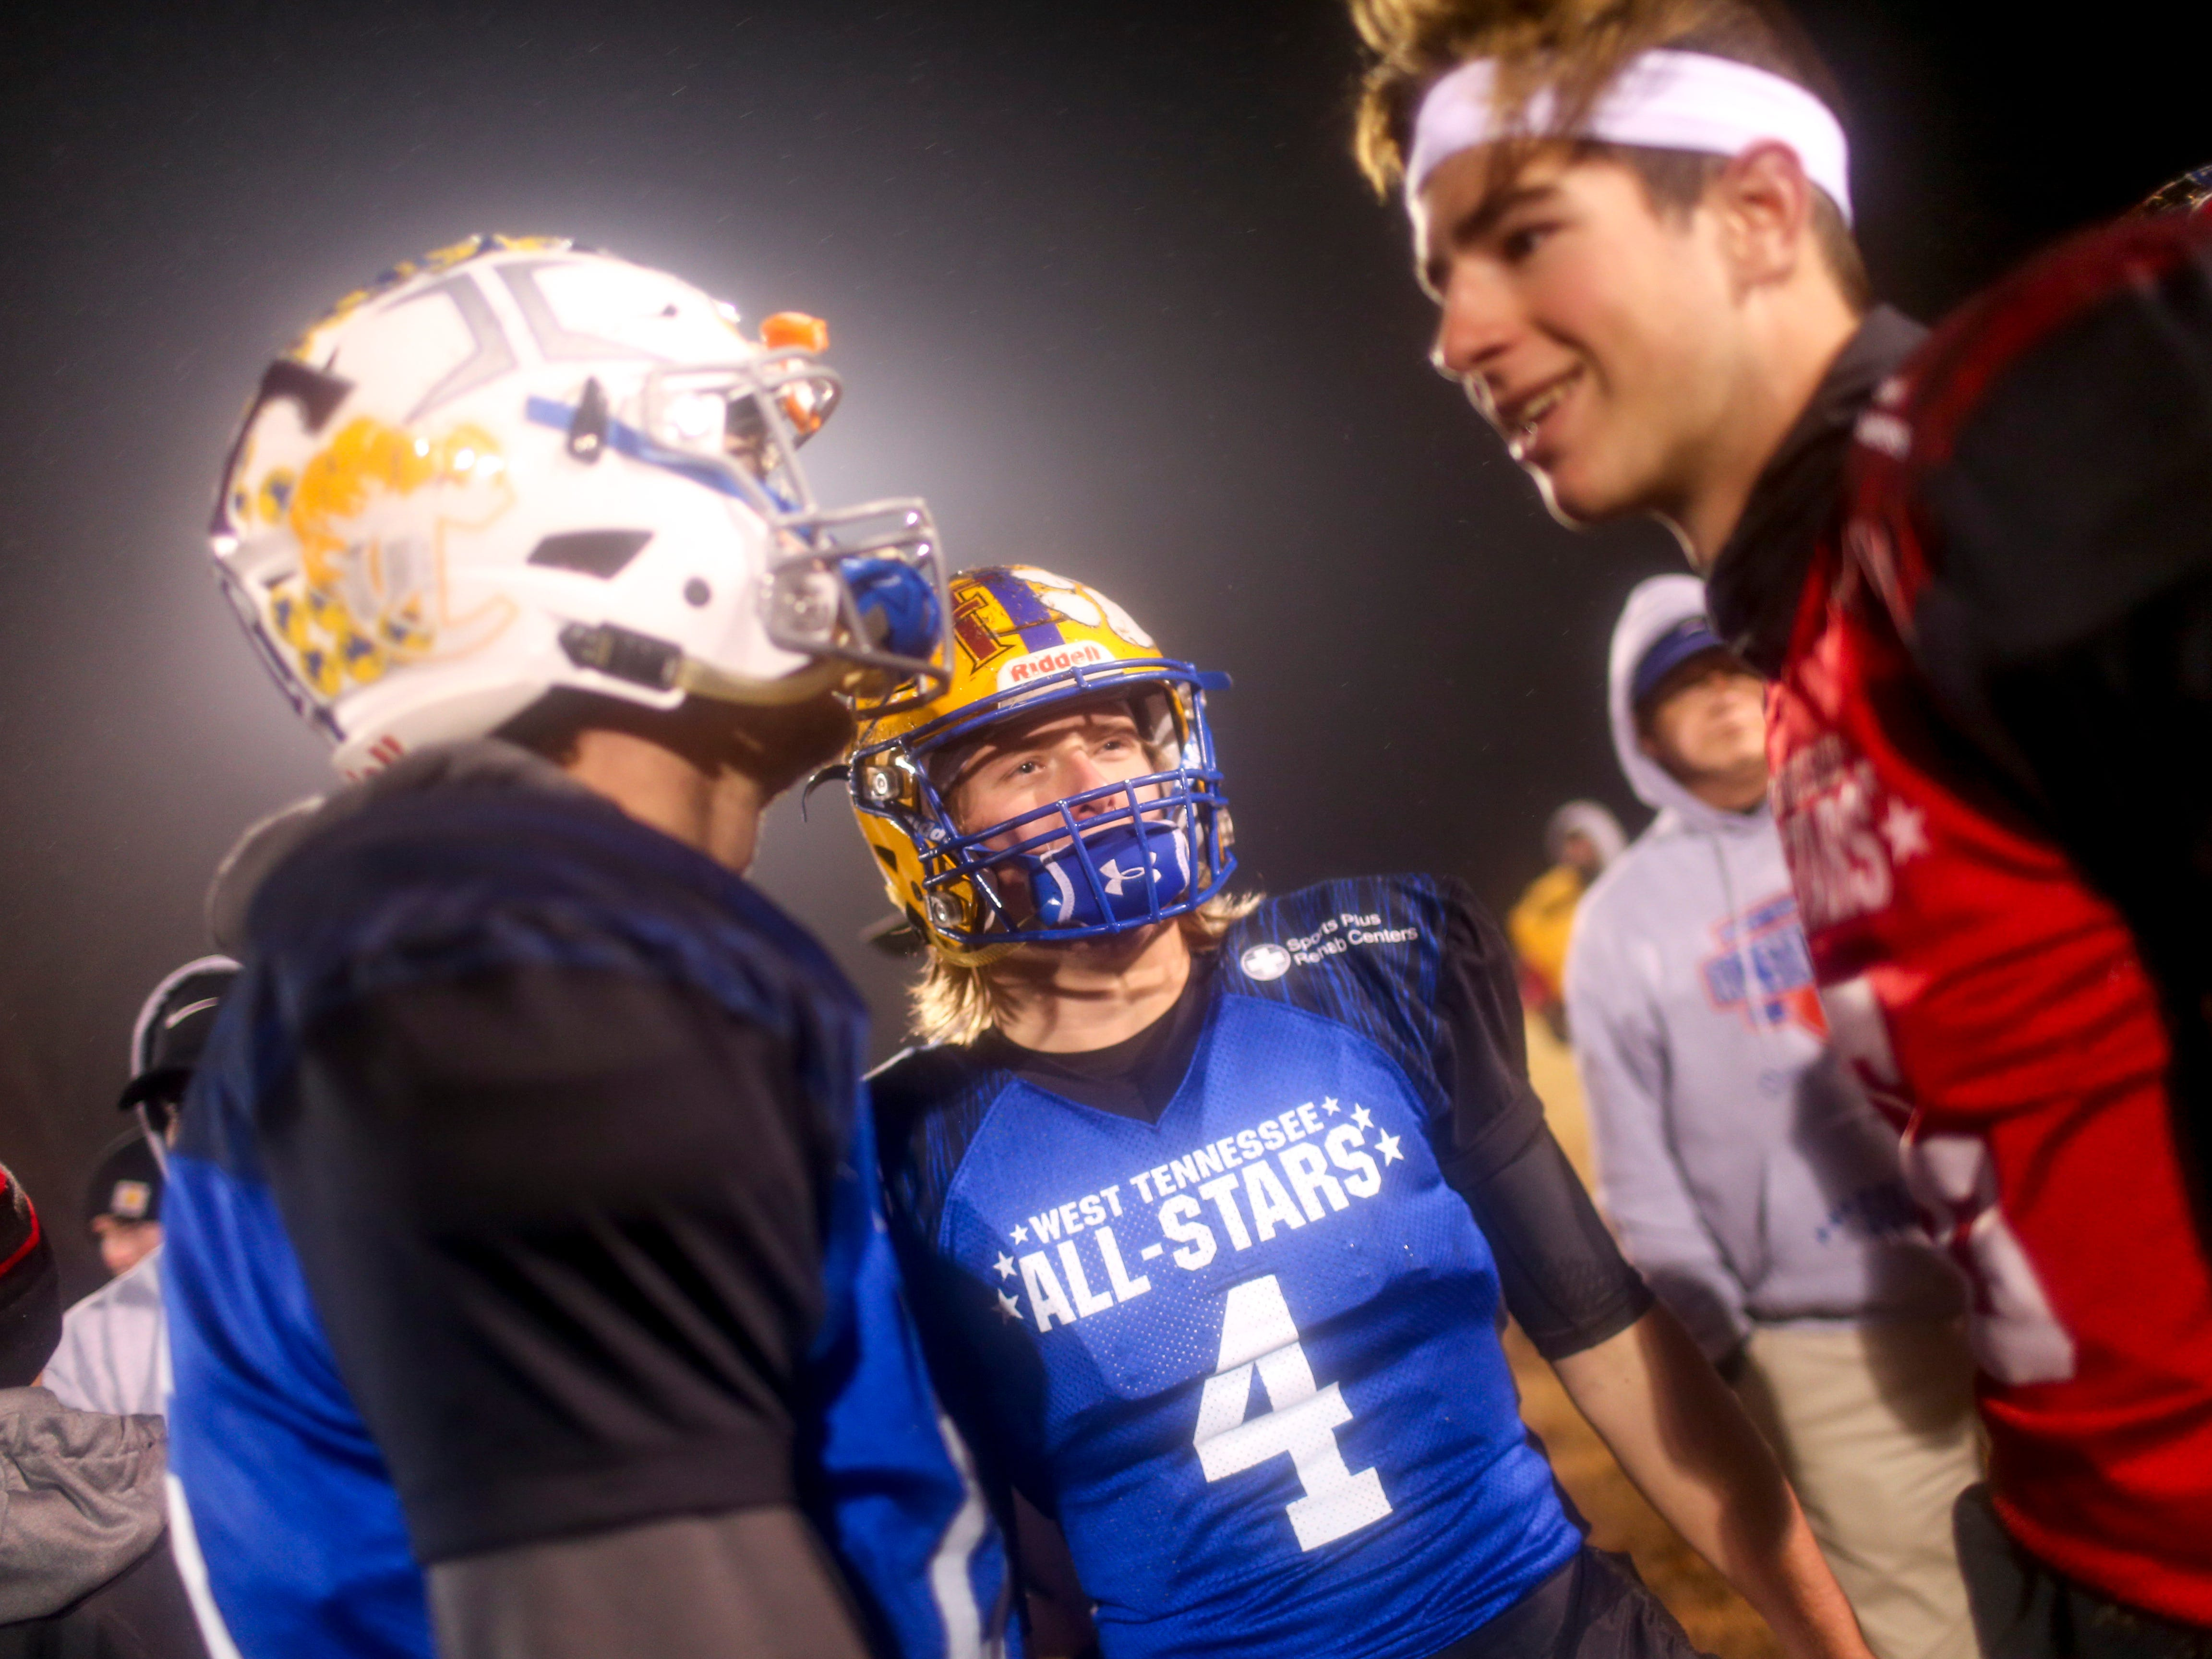 Riverside's Stone Frost (4) chats with other players from the game during the West Tennessee All-Star football game at University School of Jackson in Jackson, Tenn., on Friday, Dec. 7, 2018.